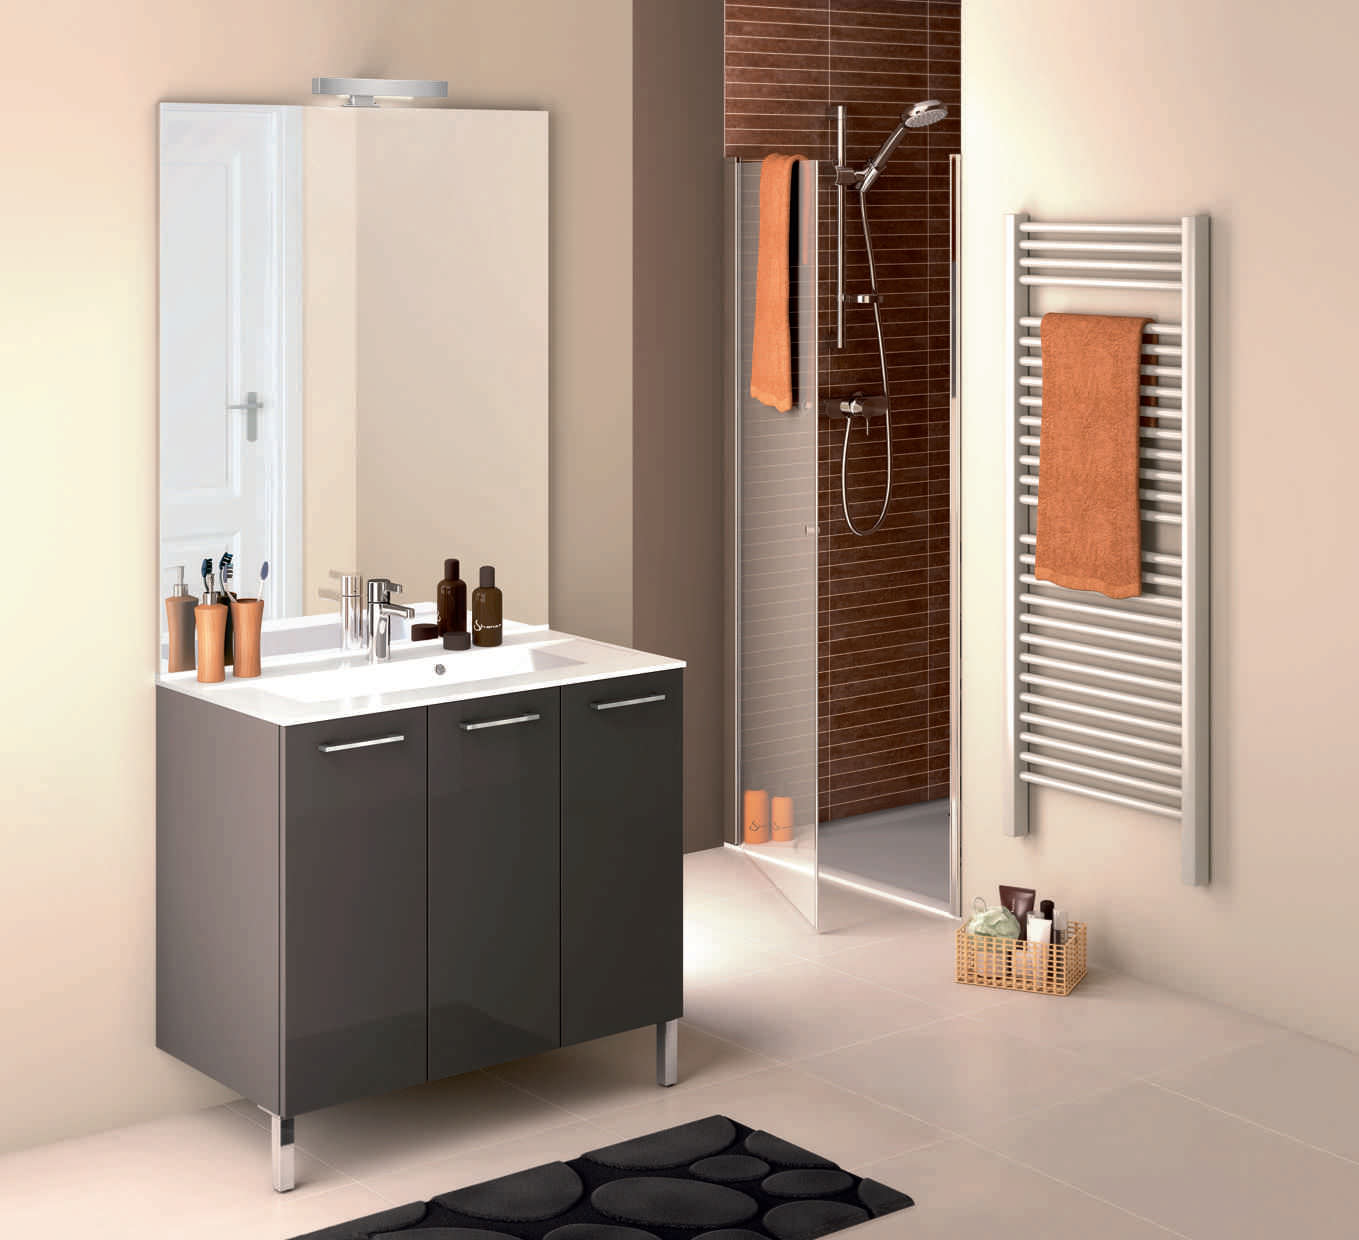 miroir a poser au sol meuble salle de bain double vasques. Black Bedroom Furniture Sets. Home Design Ideas